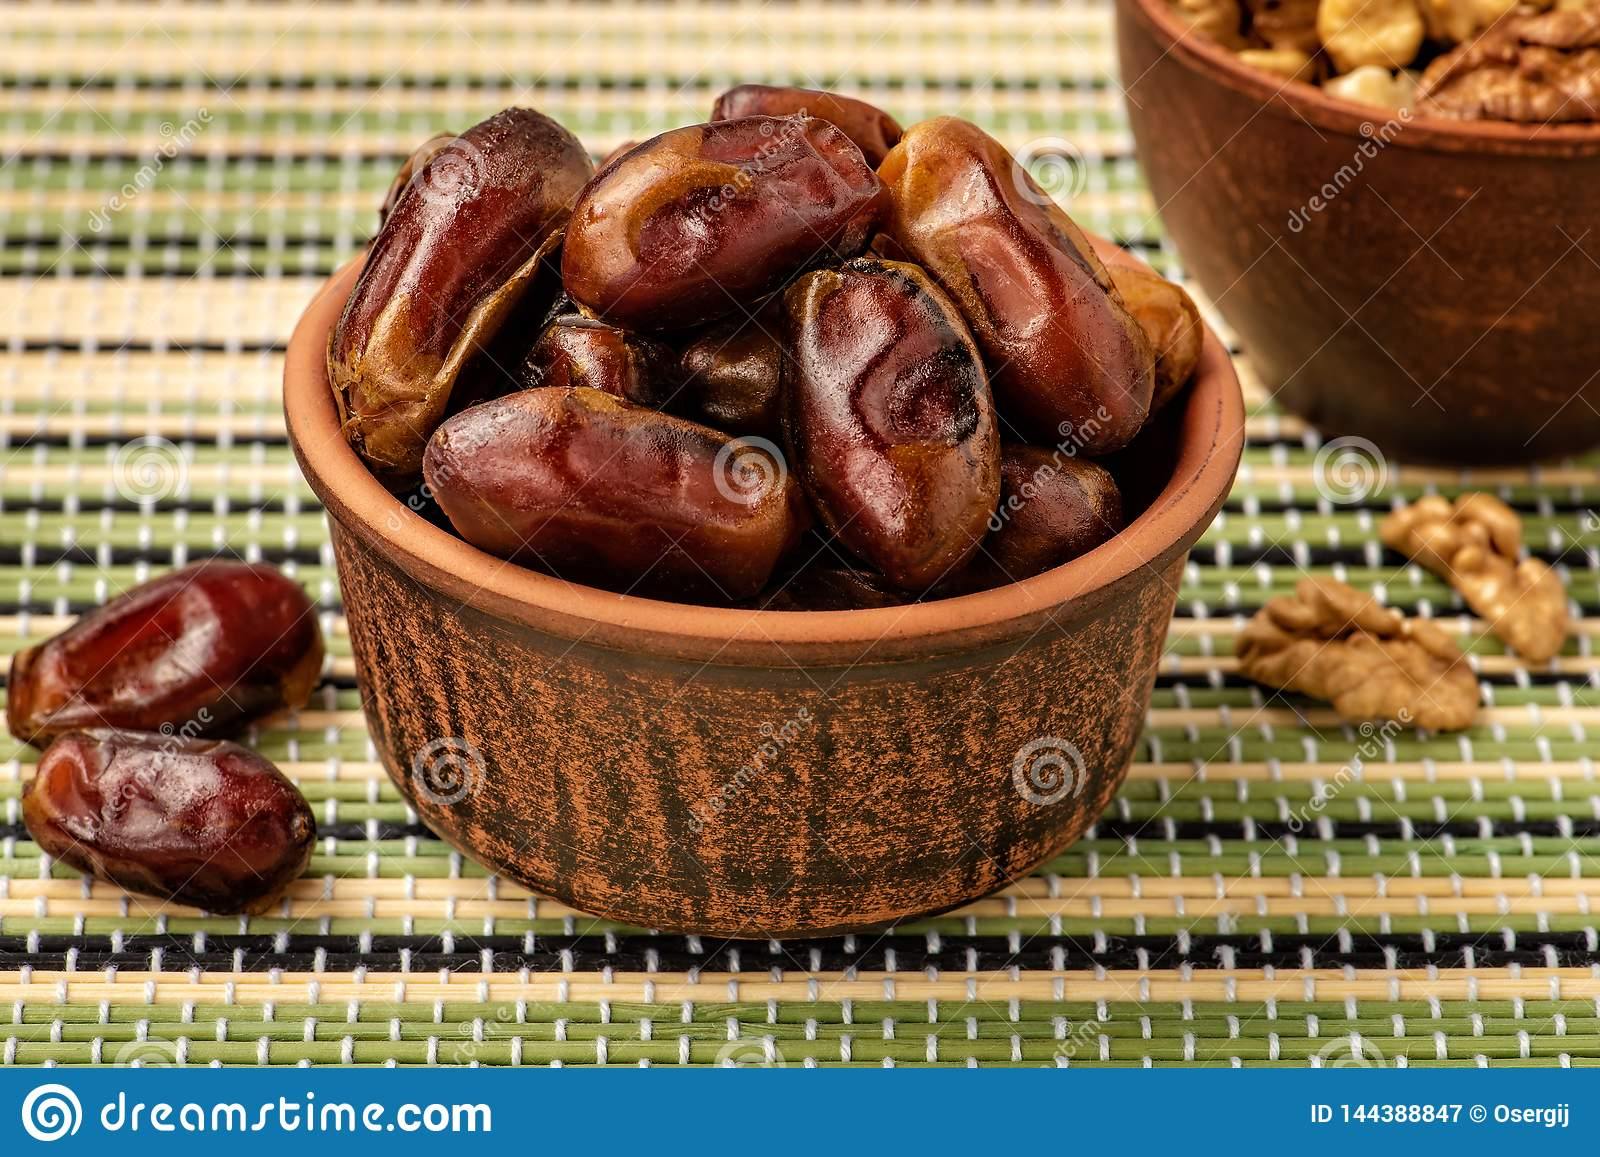 Delicious dried dates, a favorite dish of many gourmets